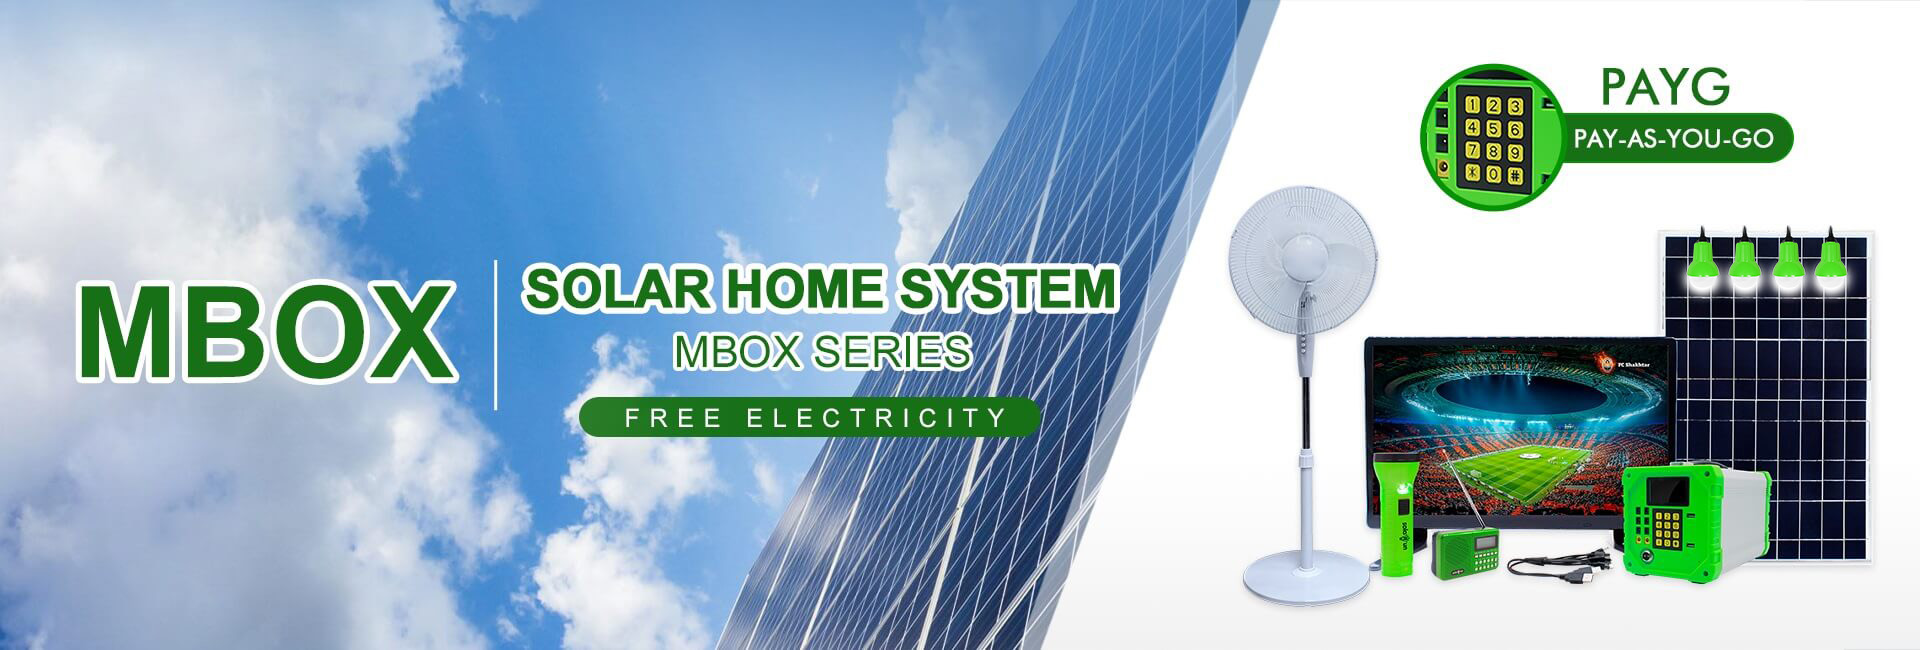 Mbox-Solar Energy System For Home